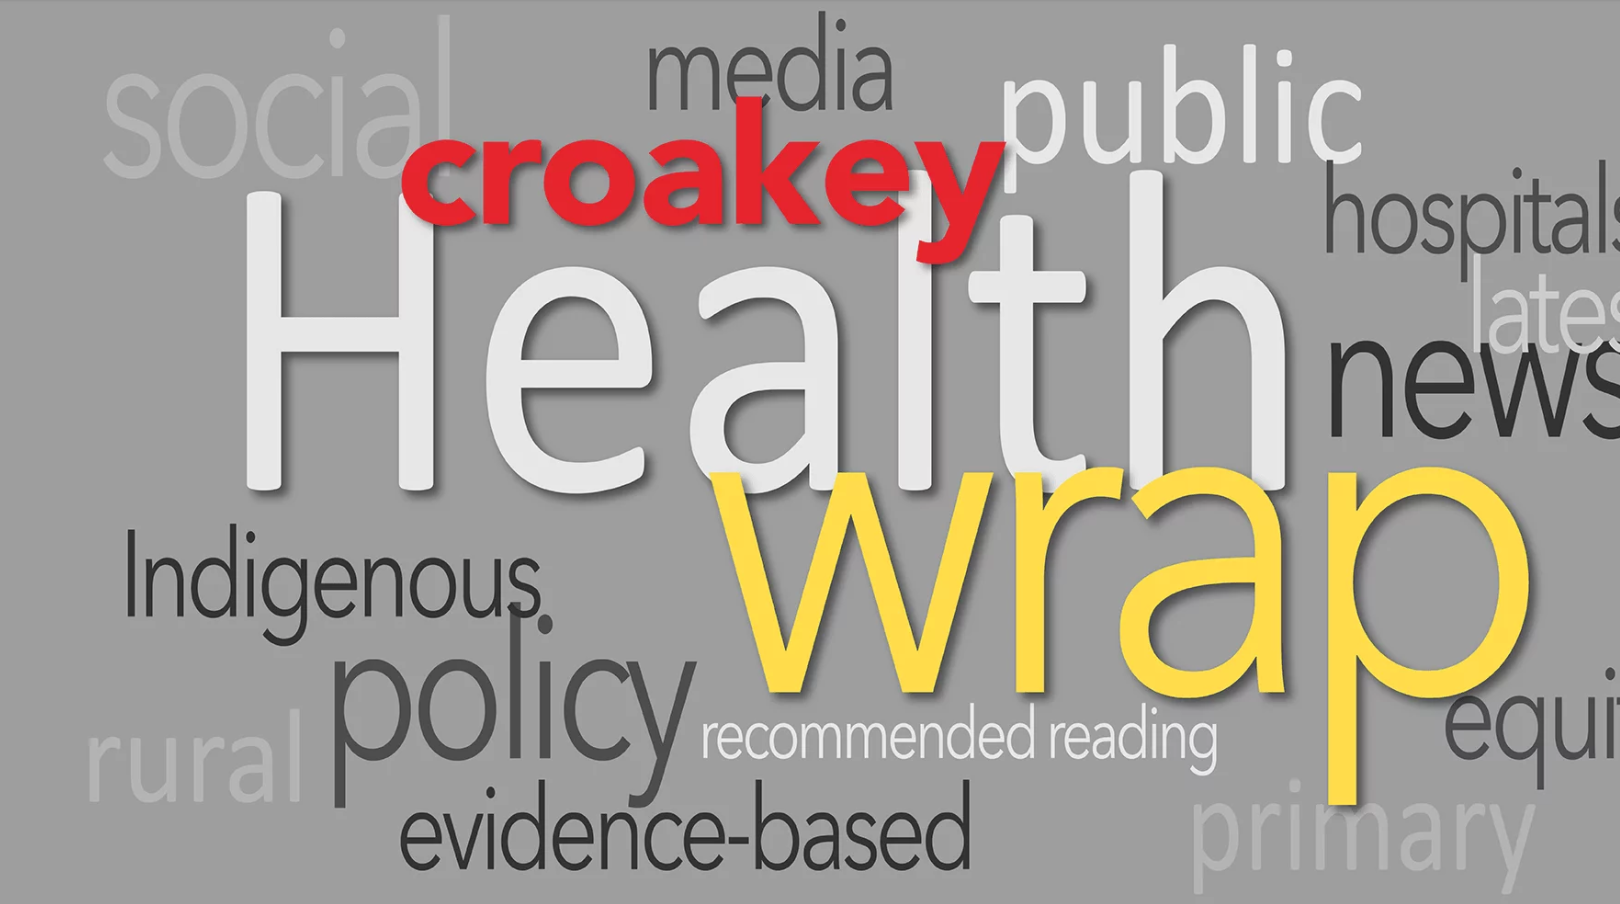 The Health Wrap: looking back at 2020, and forward on vaccines, coronavirus, mental health, aged care, health reform agenda and more